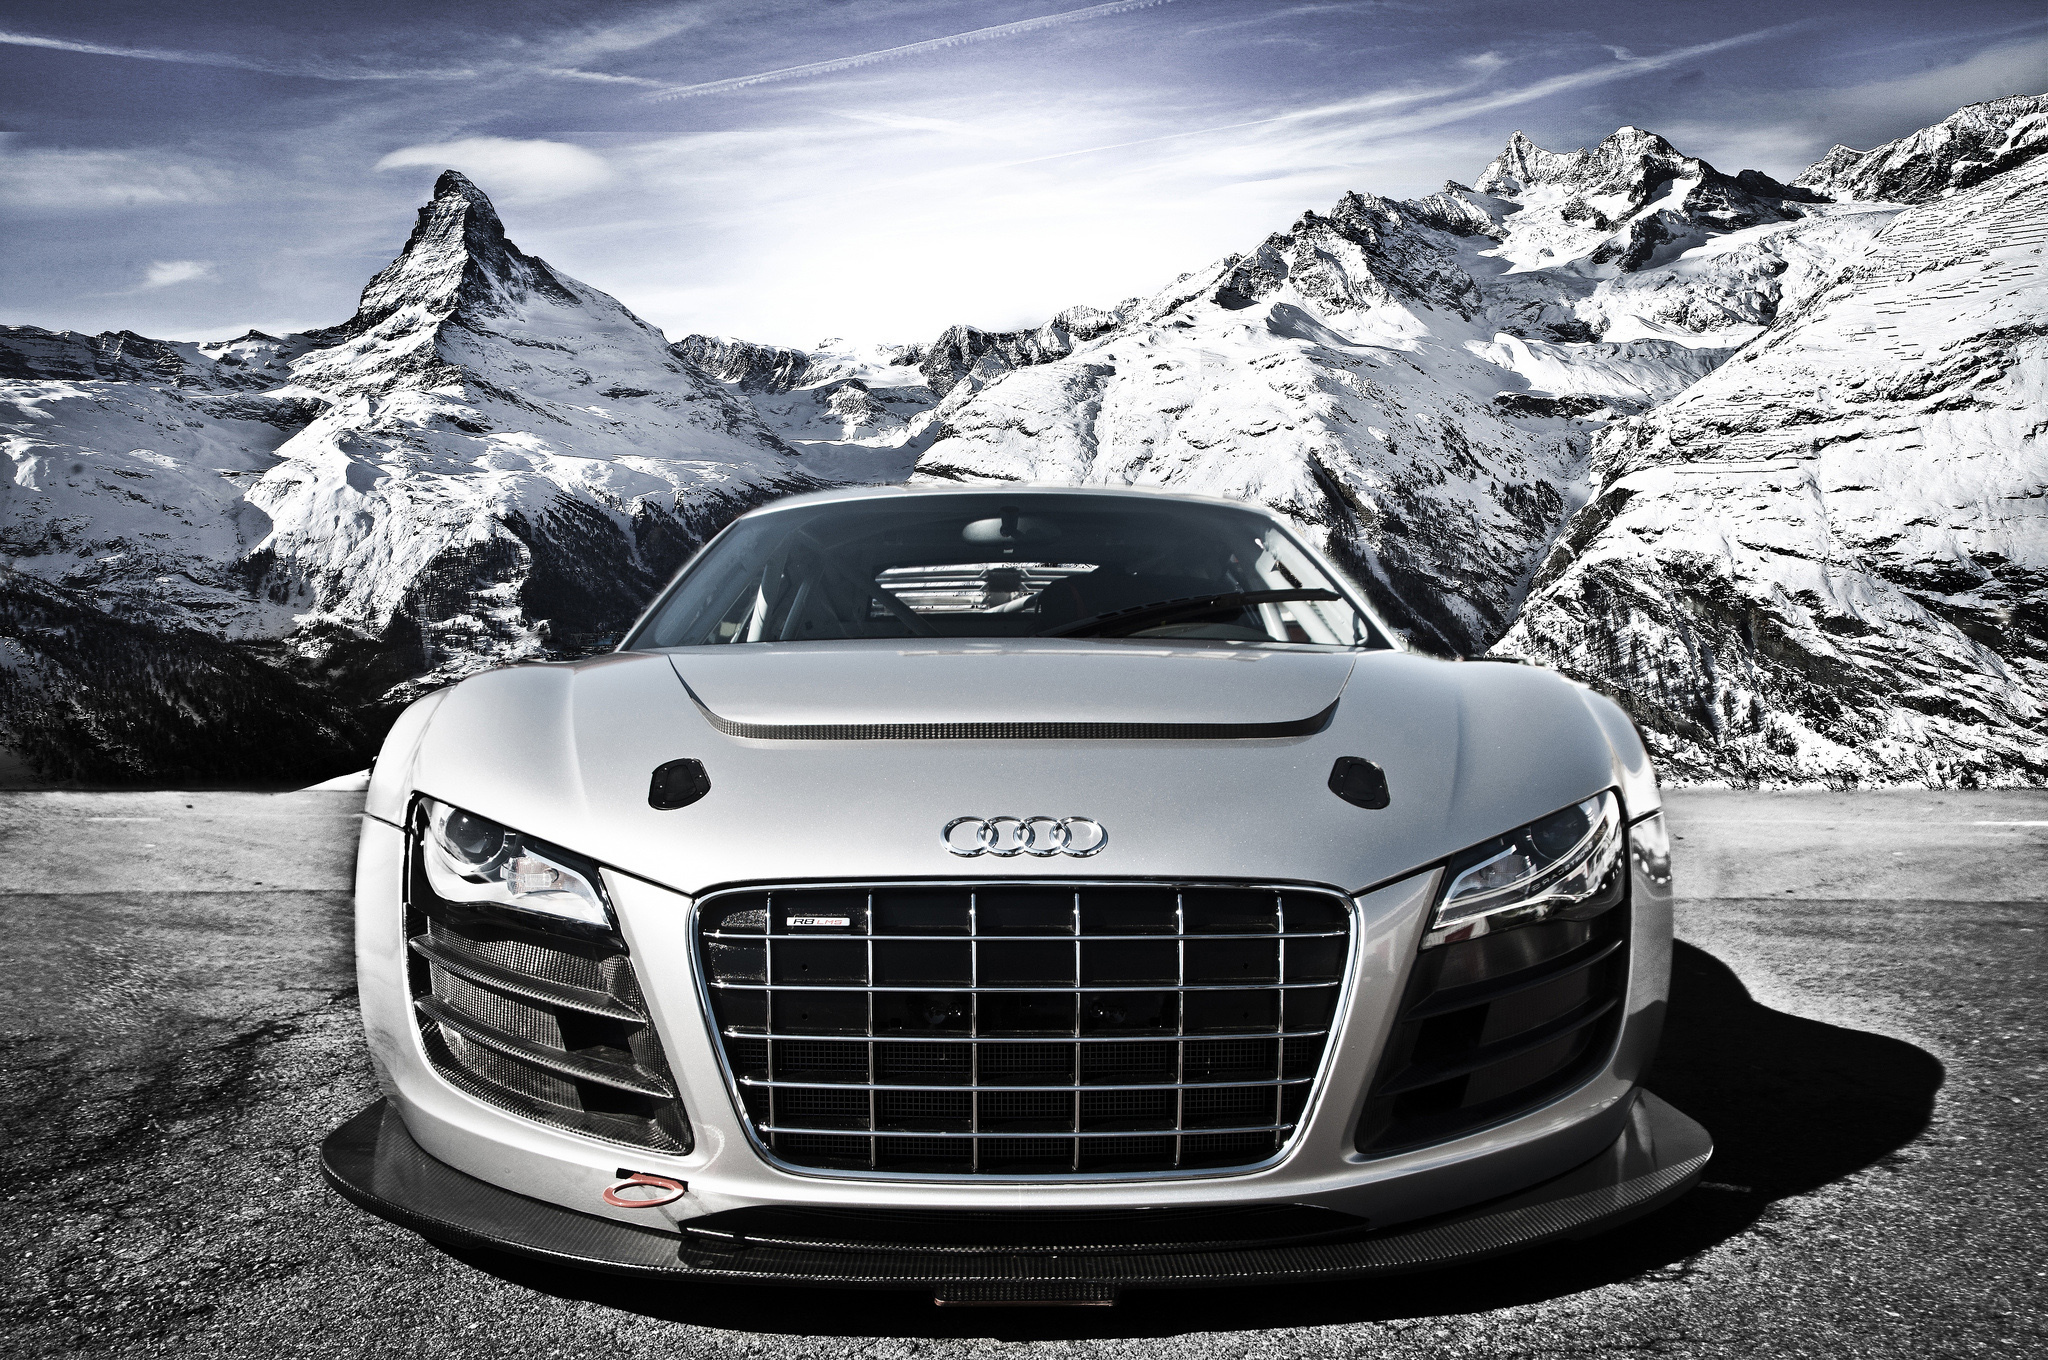 Super Cars HD Wallpapers – The Best Super Cars HD ...